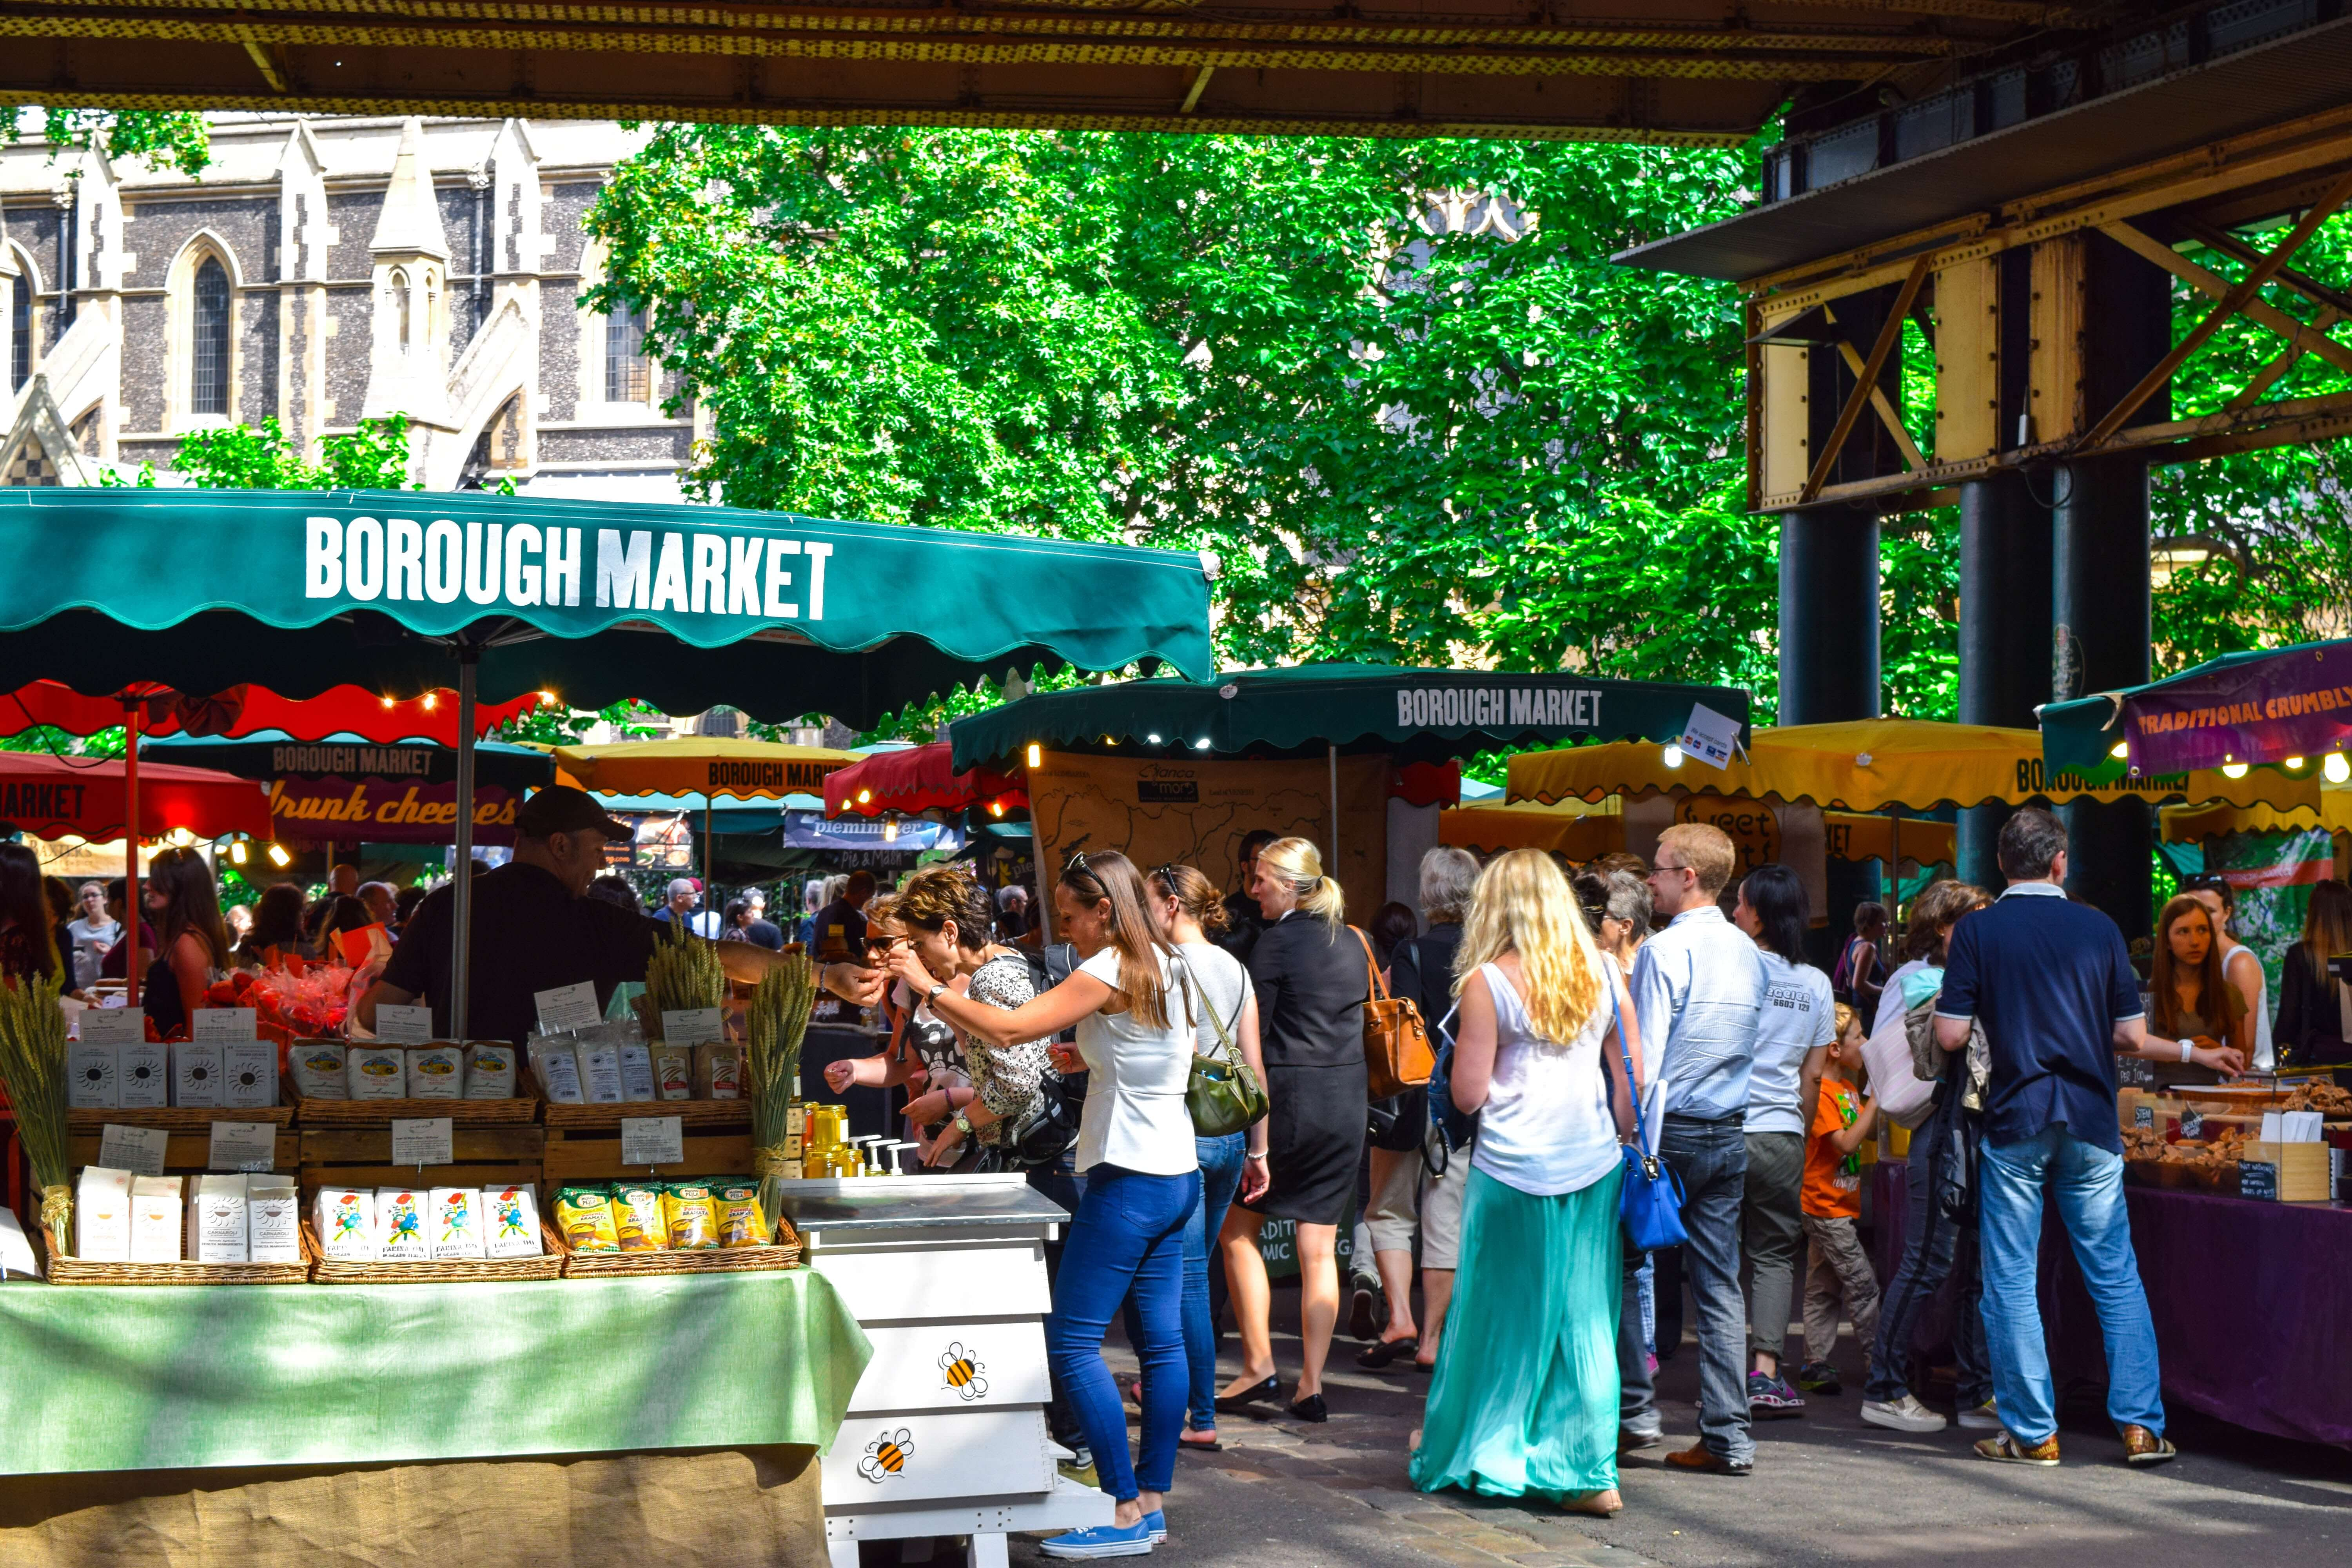 farmers market, activities for last days of summer